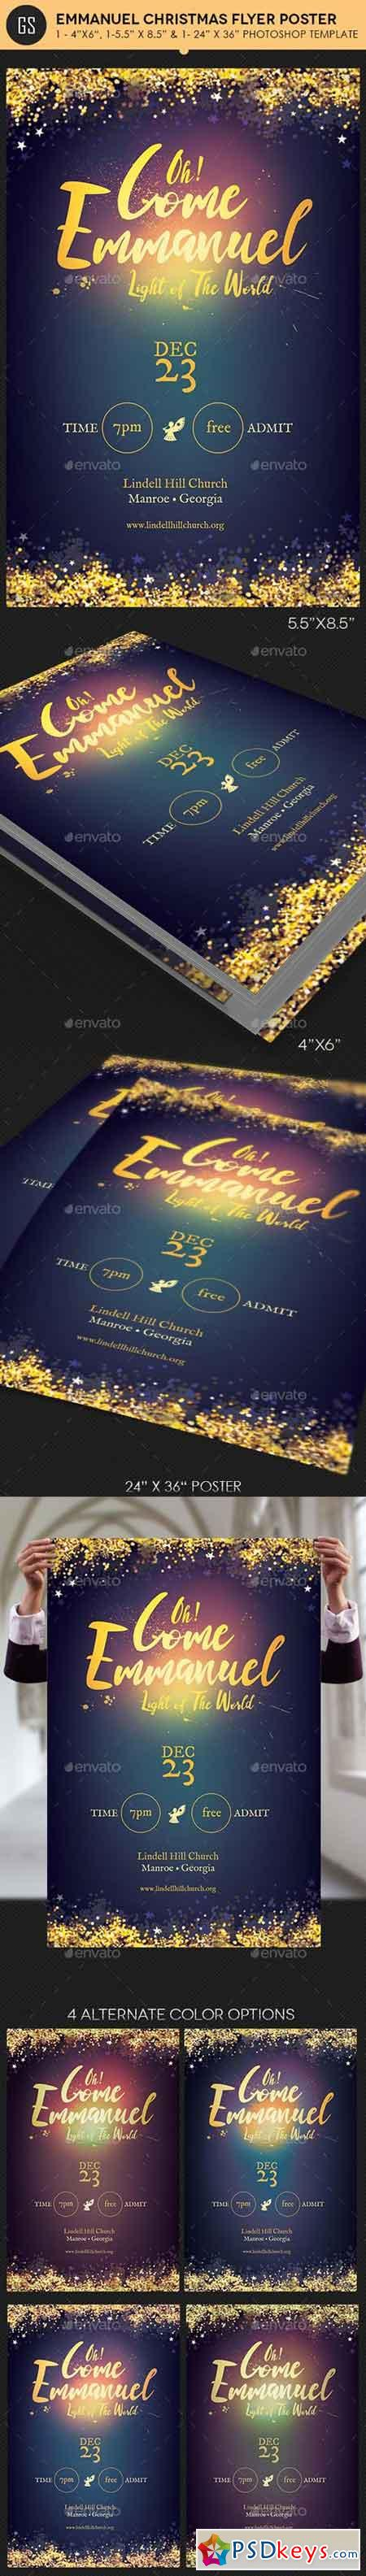 Emmanuel Christmas Cantata Flyer Poster Template - 18669995